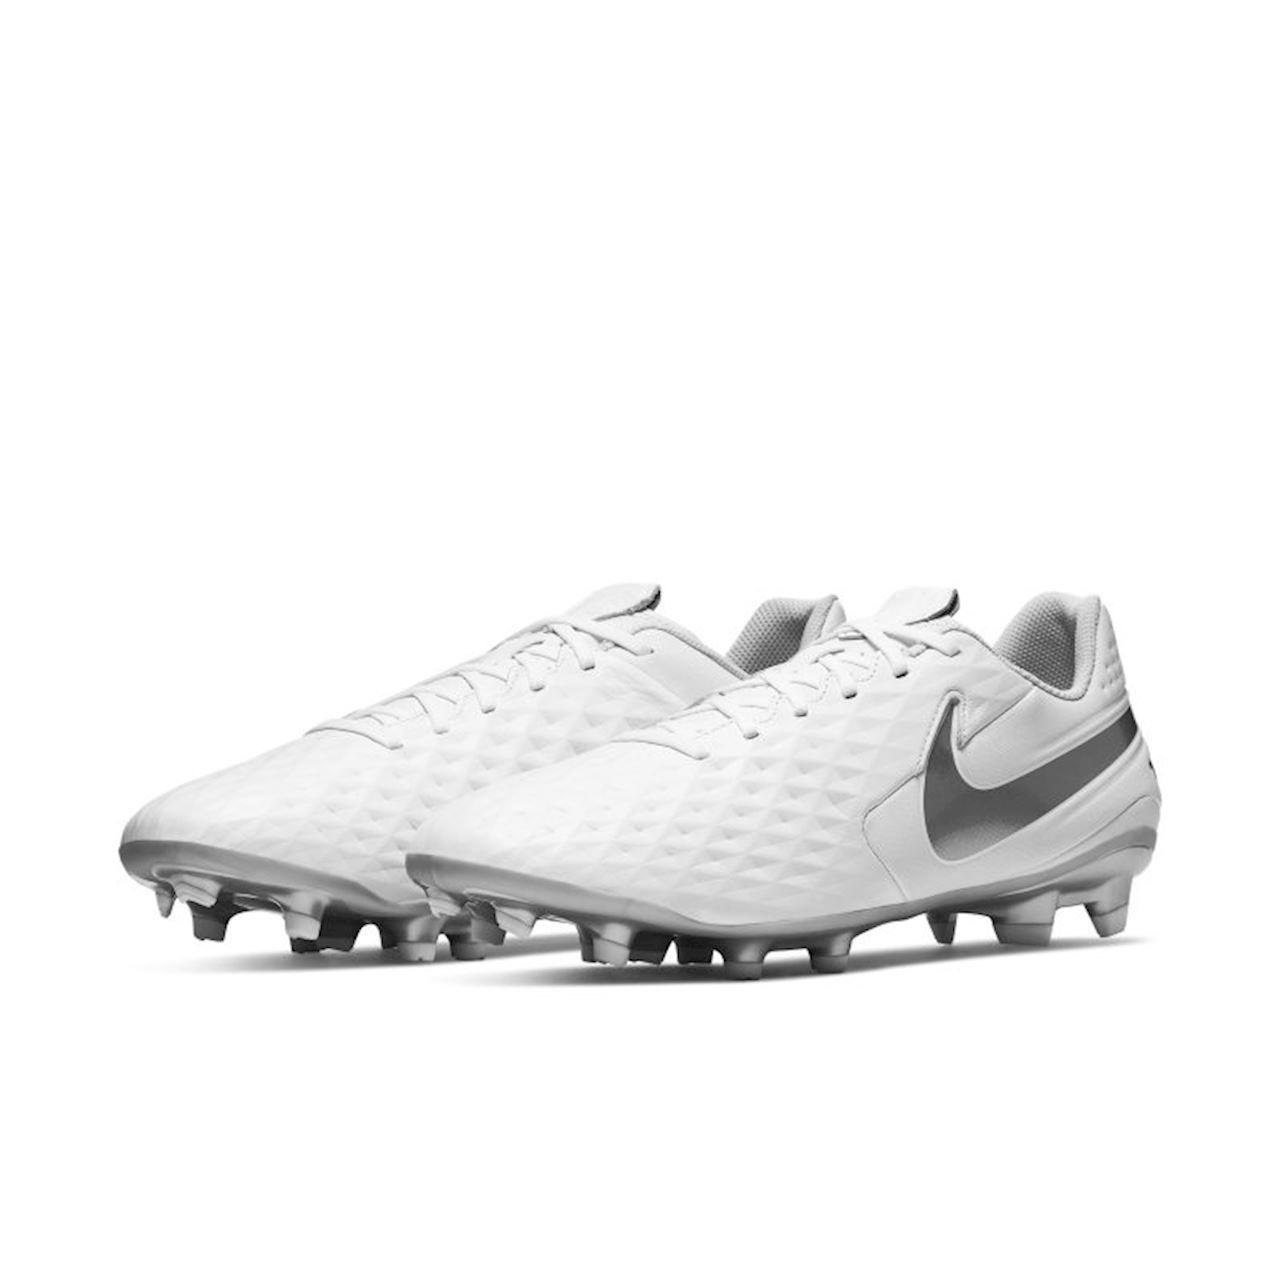 NIKE LEGEND VIII ACADEMY FG/MG AT5292-100